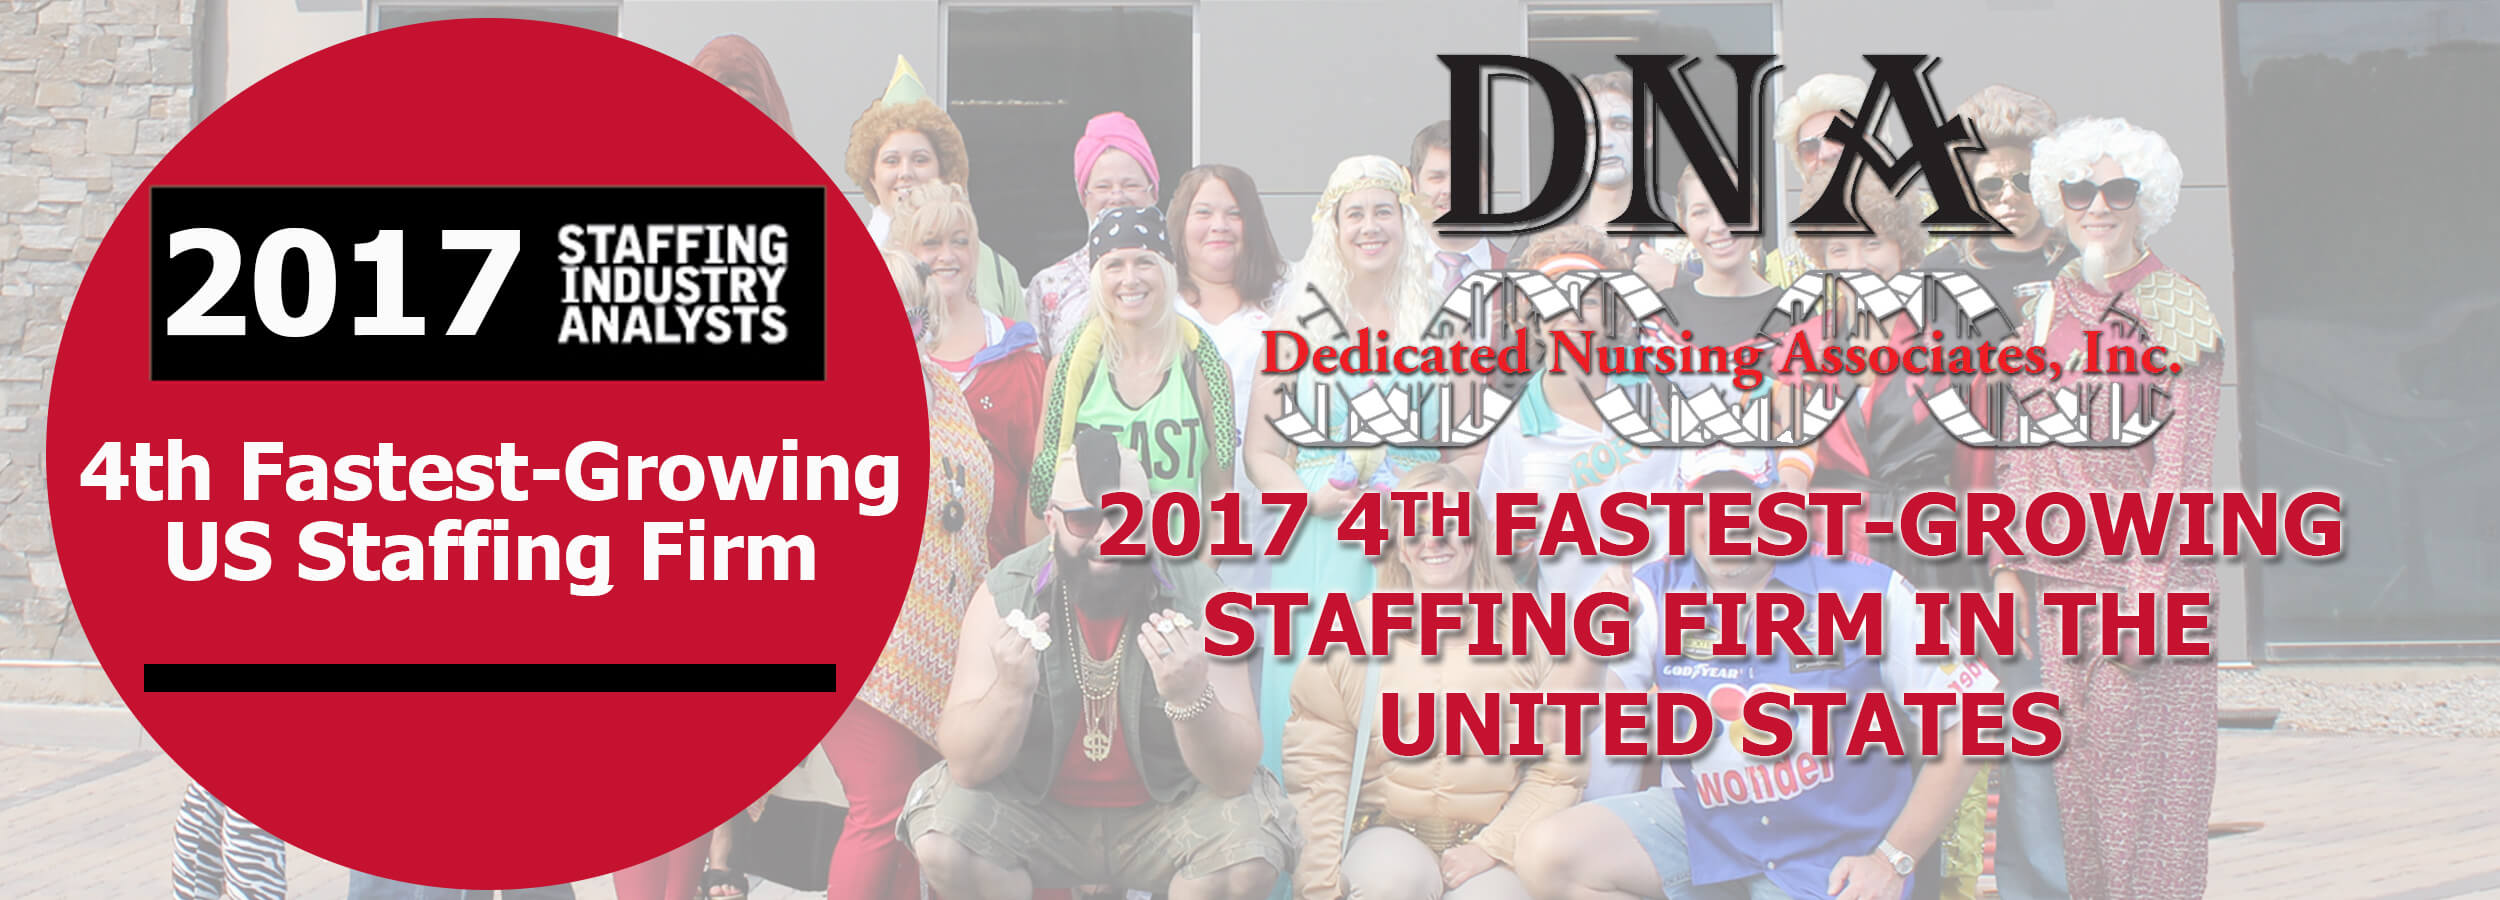 Dedicated Nursing Associates, Inc. (DNA) Named 4th Fastest Growing Staffing Firm In The US 2017